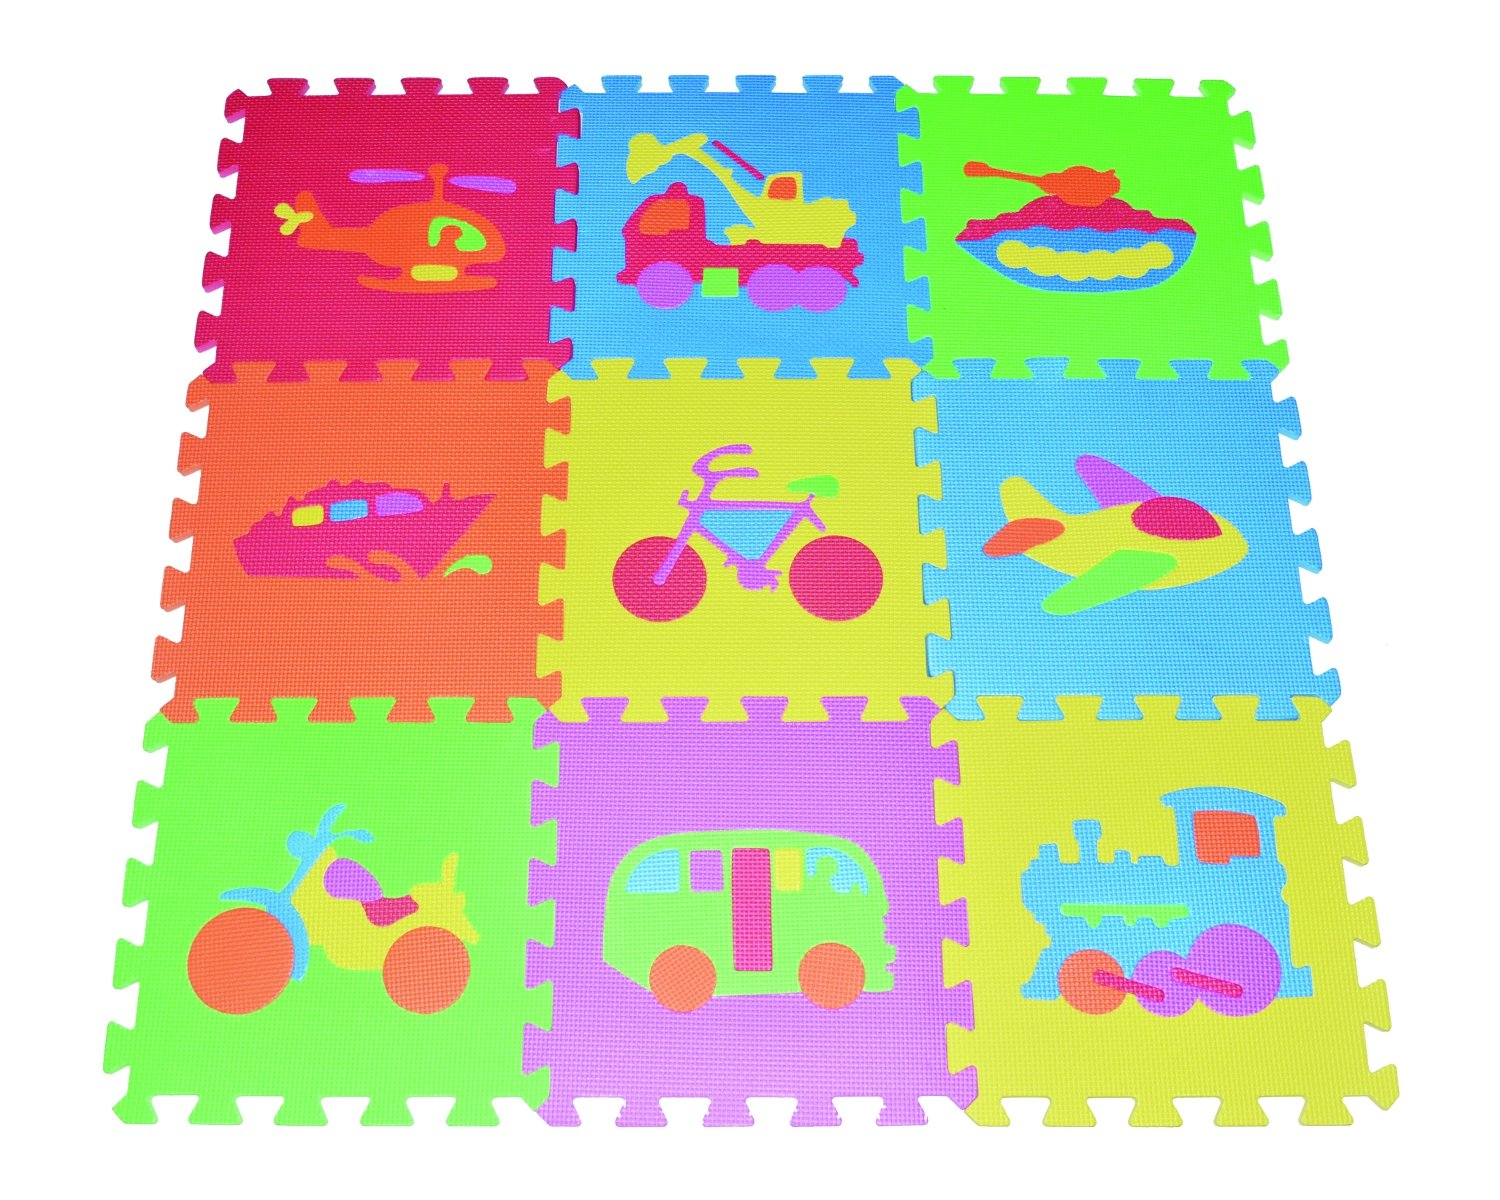 alphabet for mat kids mats educational floor planet toys puzzle